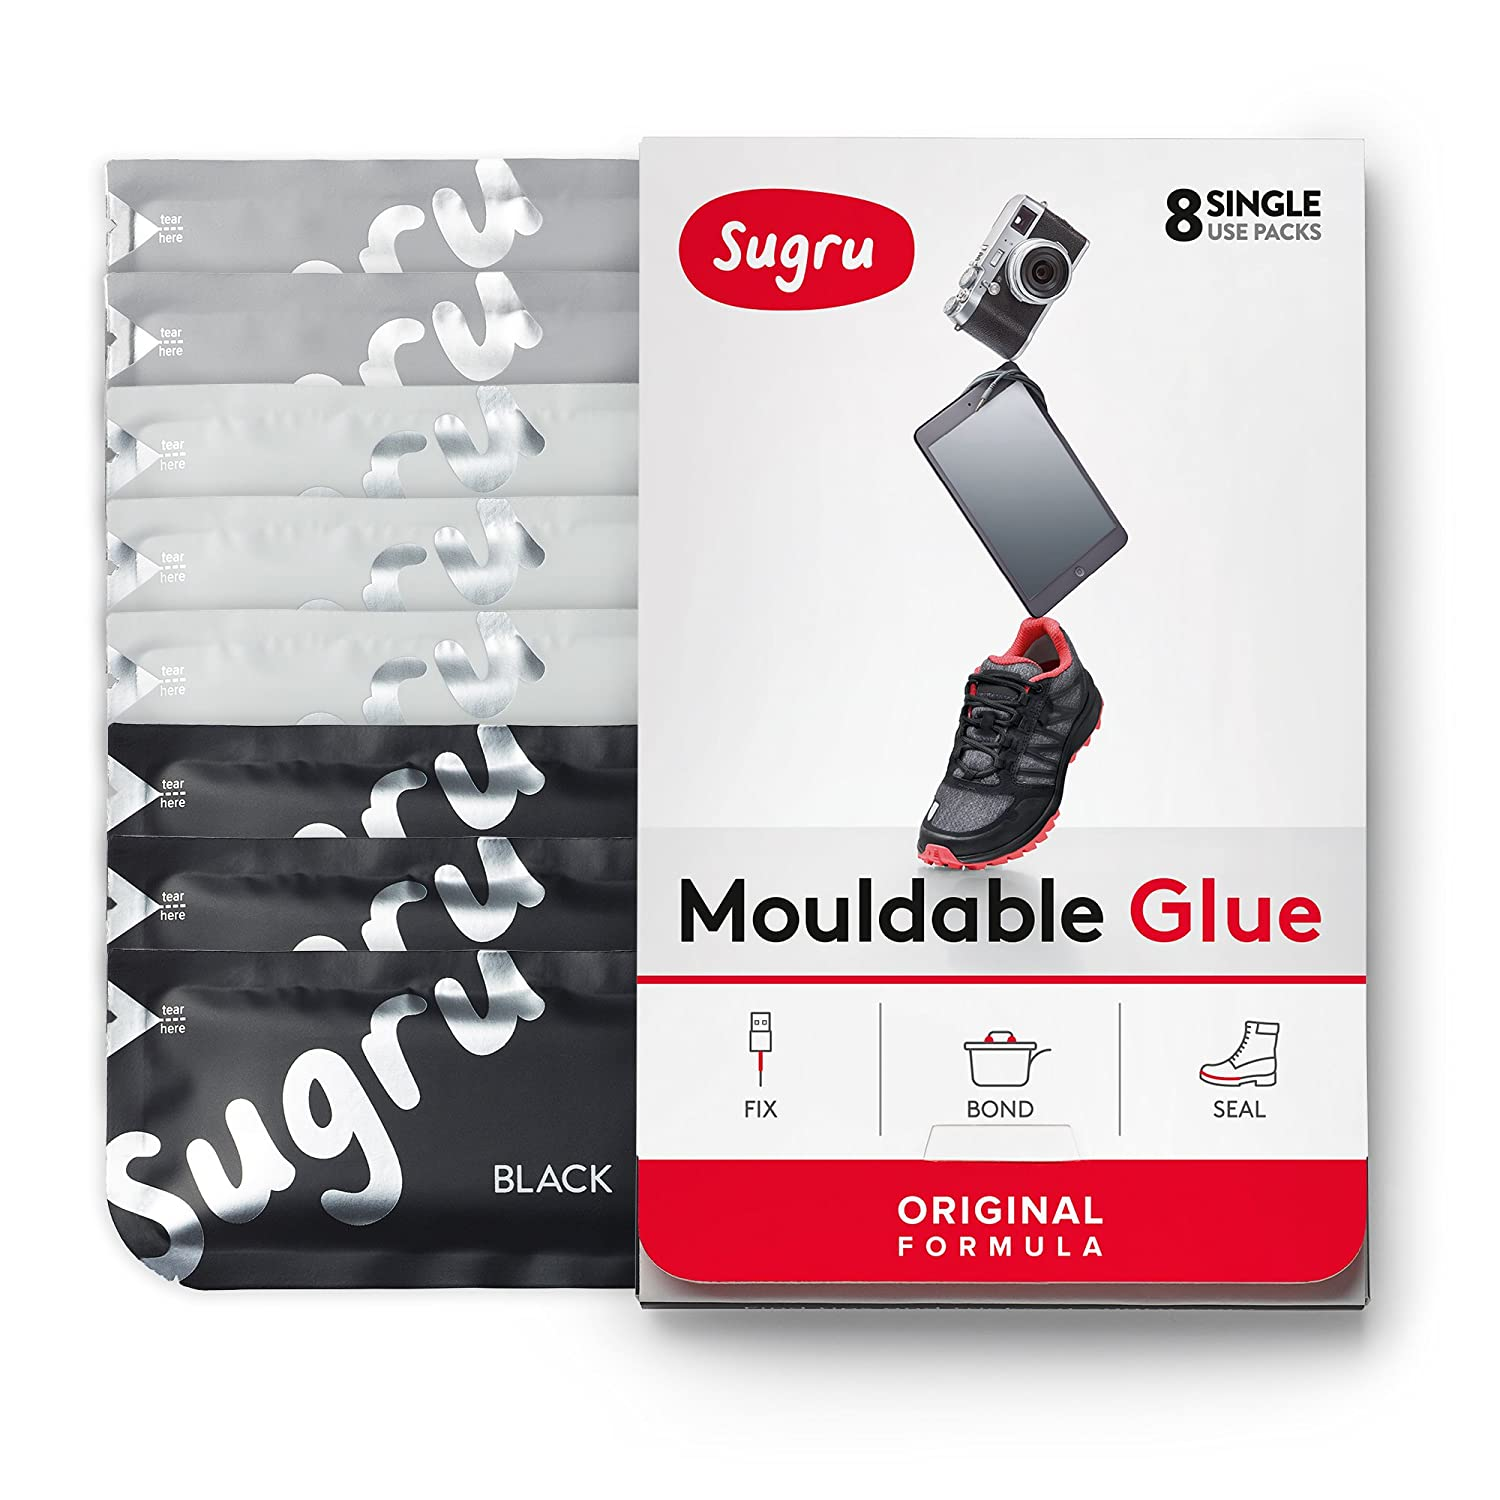 Sugru Moldable Glue - Original Formula - Black, White & Grey 8-Pack